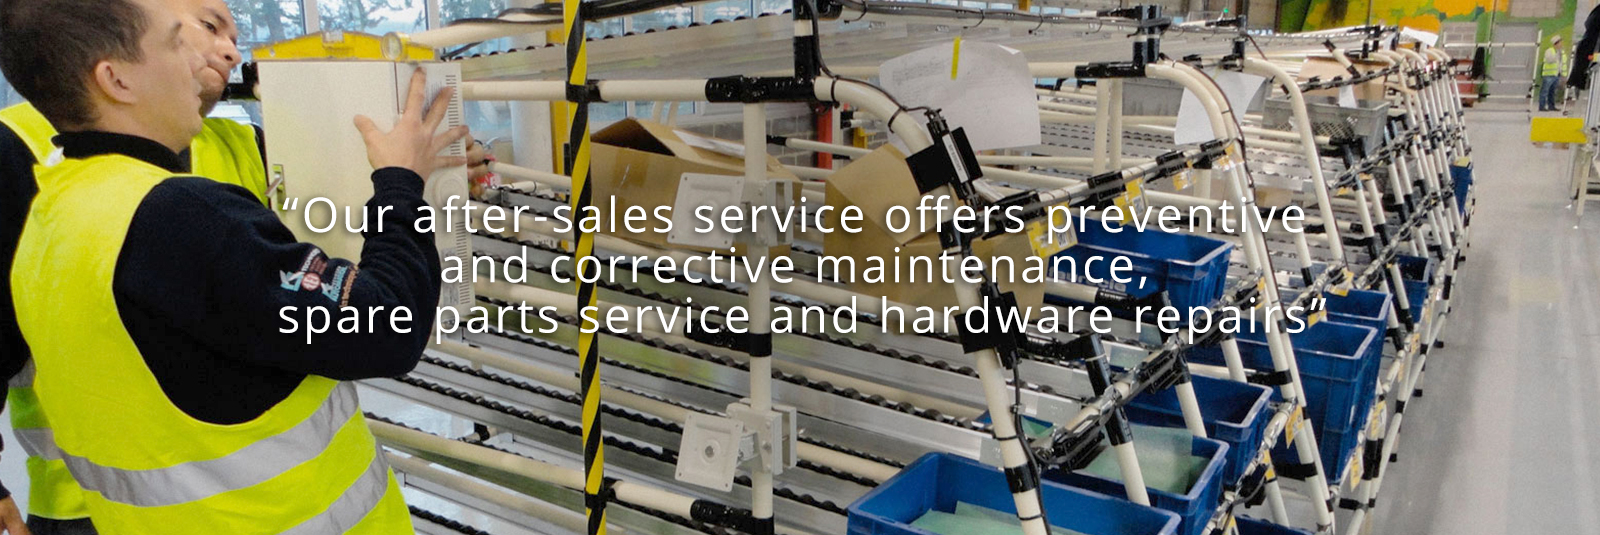 Our after-sales service offers preventive and corrective maintenance, spare parts service and hardware repairs